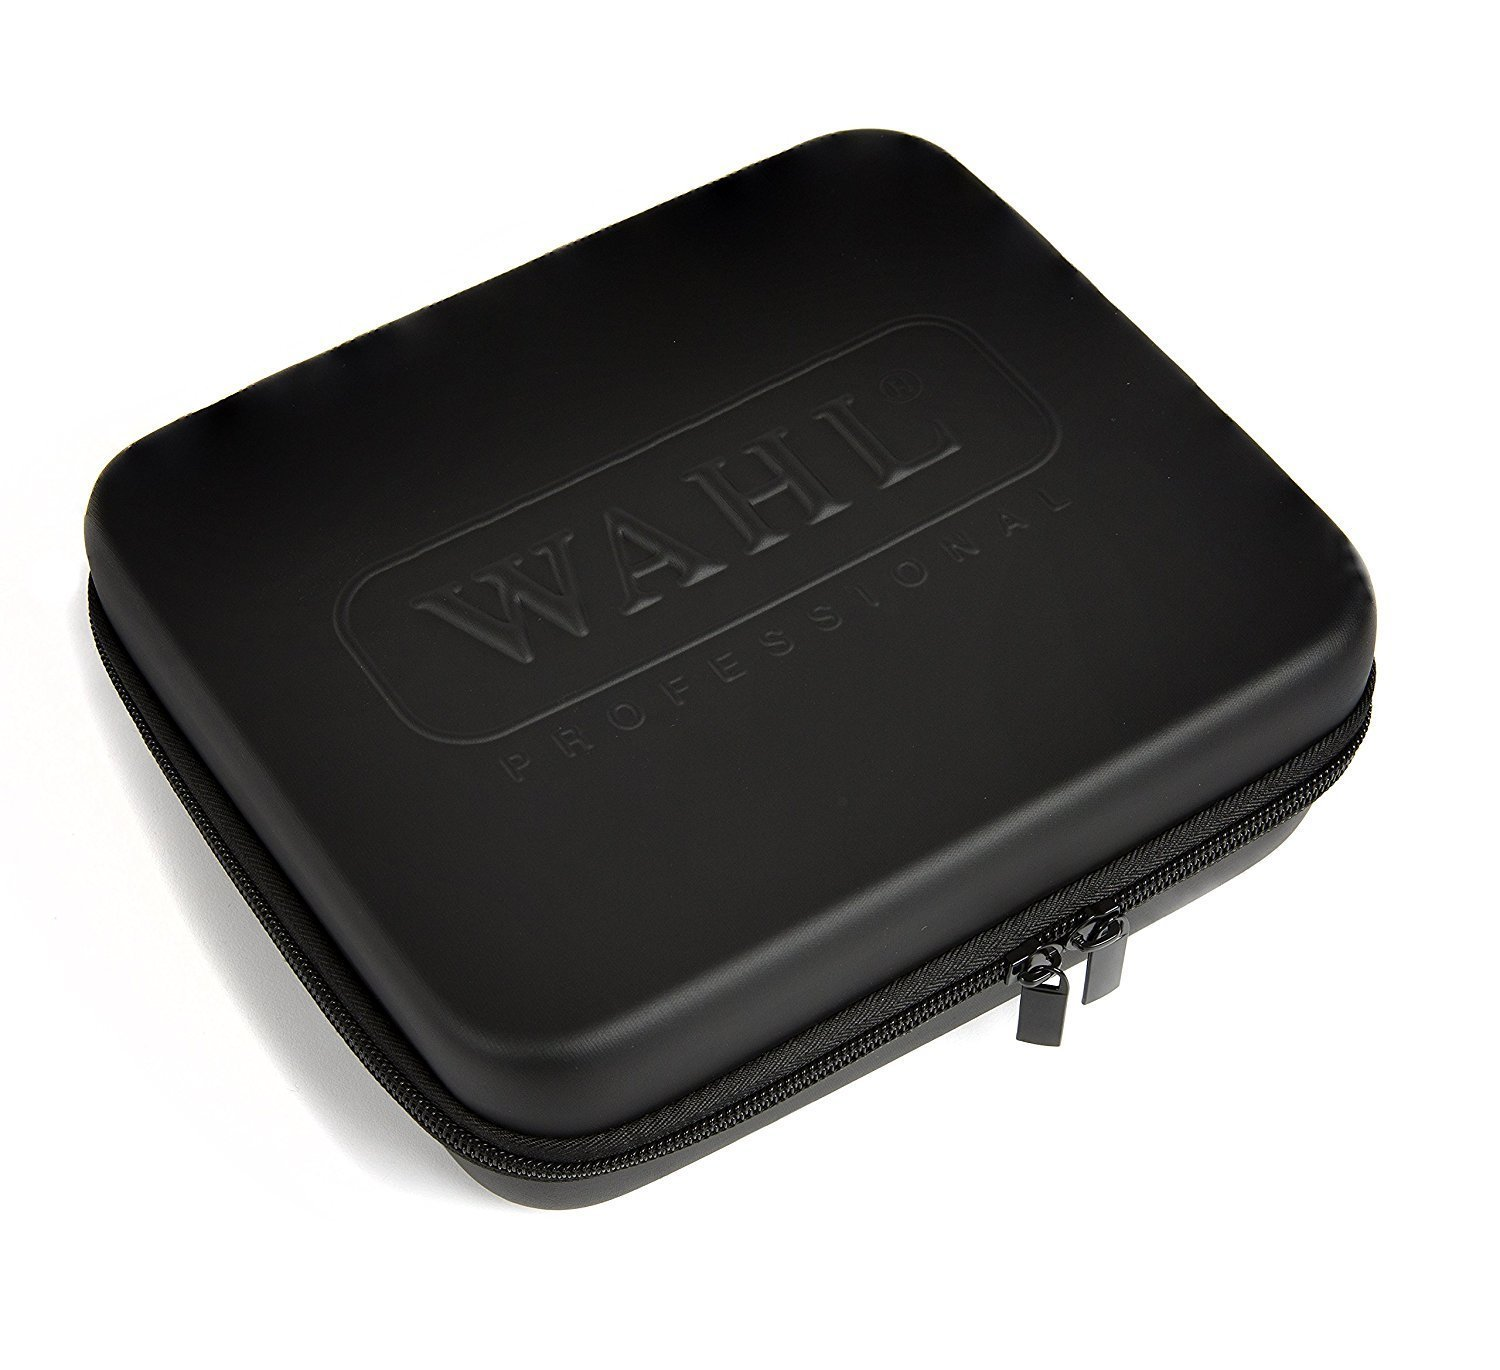 Wahl Professional Peanut Clipper/Trimmer #8655 with Travel Storage Case #90728 – Great for Barbers and Stylists by Wahl Professional (Image #5)